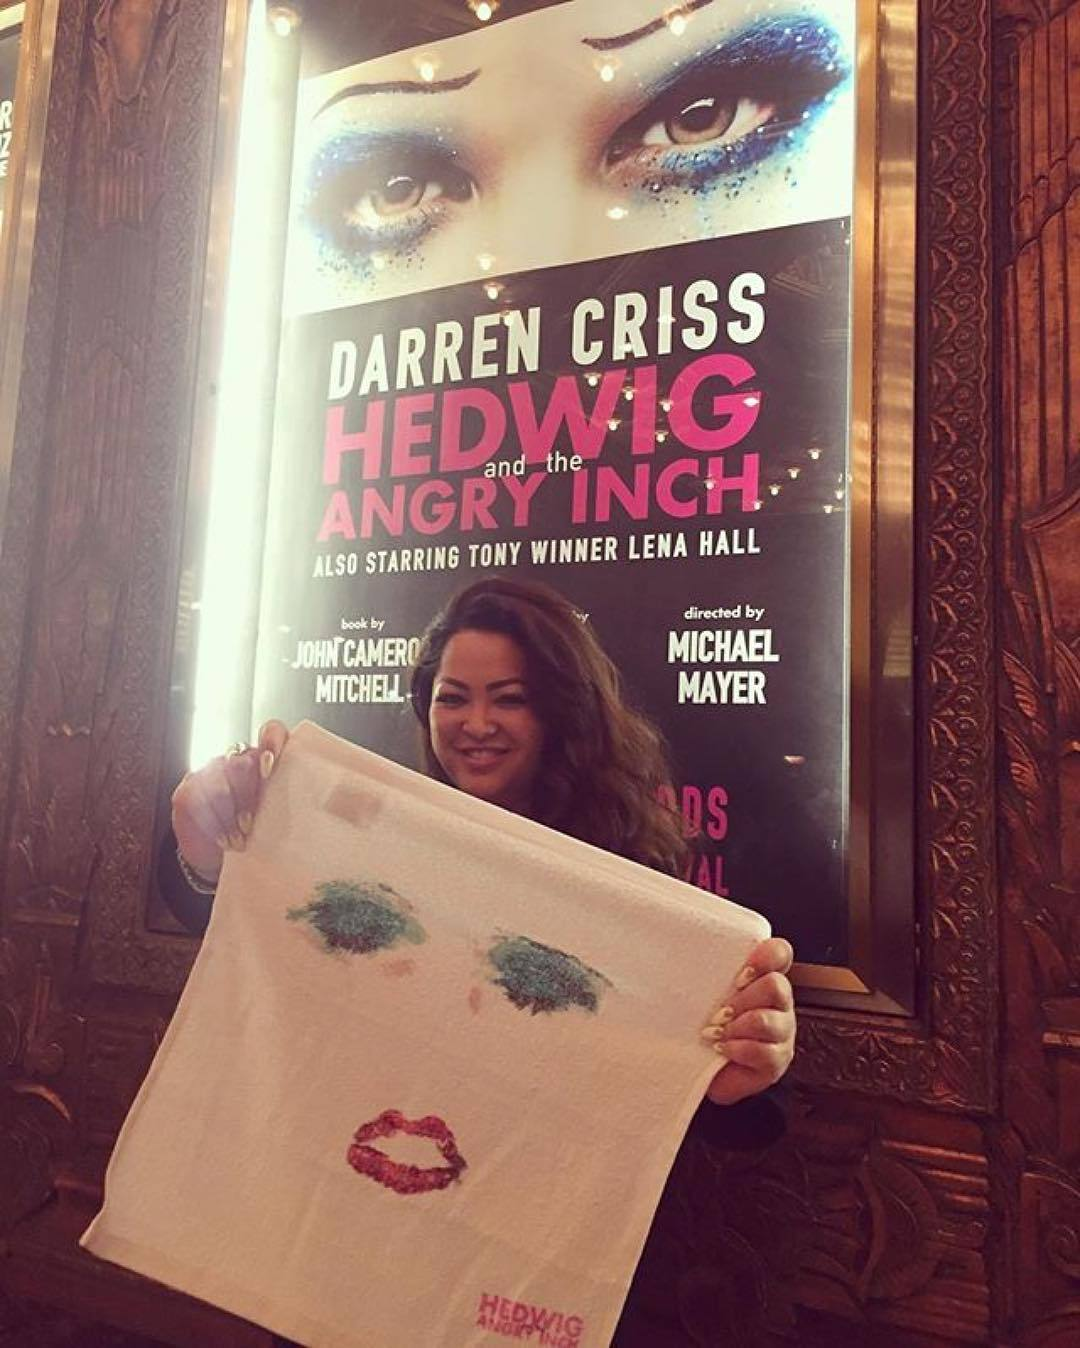 star - Fan Reviews, Media Reviews, and comments from members of the Media, about Darren in Hedwig and the Angry Inch--SF and L.A. Tour  - Page 4 Tumblr_og3v6bp3cc1ubd9qxo1_1280